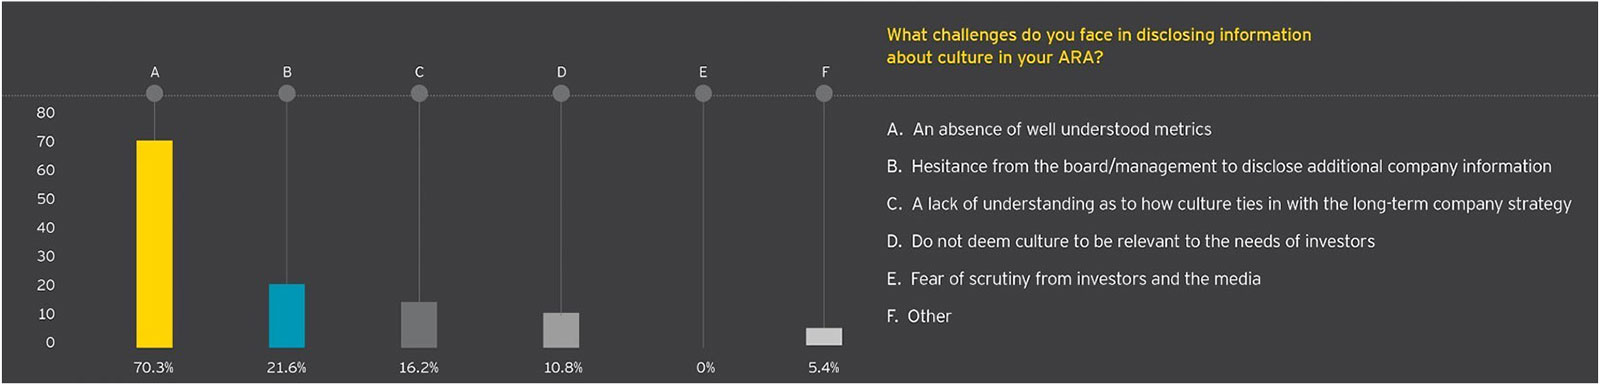 EY - ar2015 poll results - what challenges disclosing future